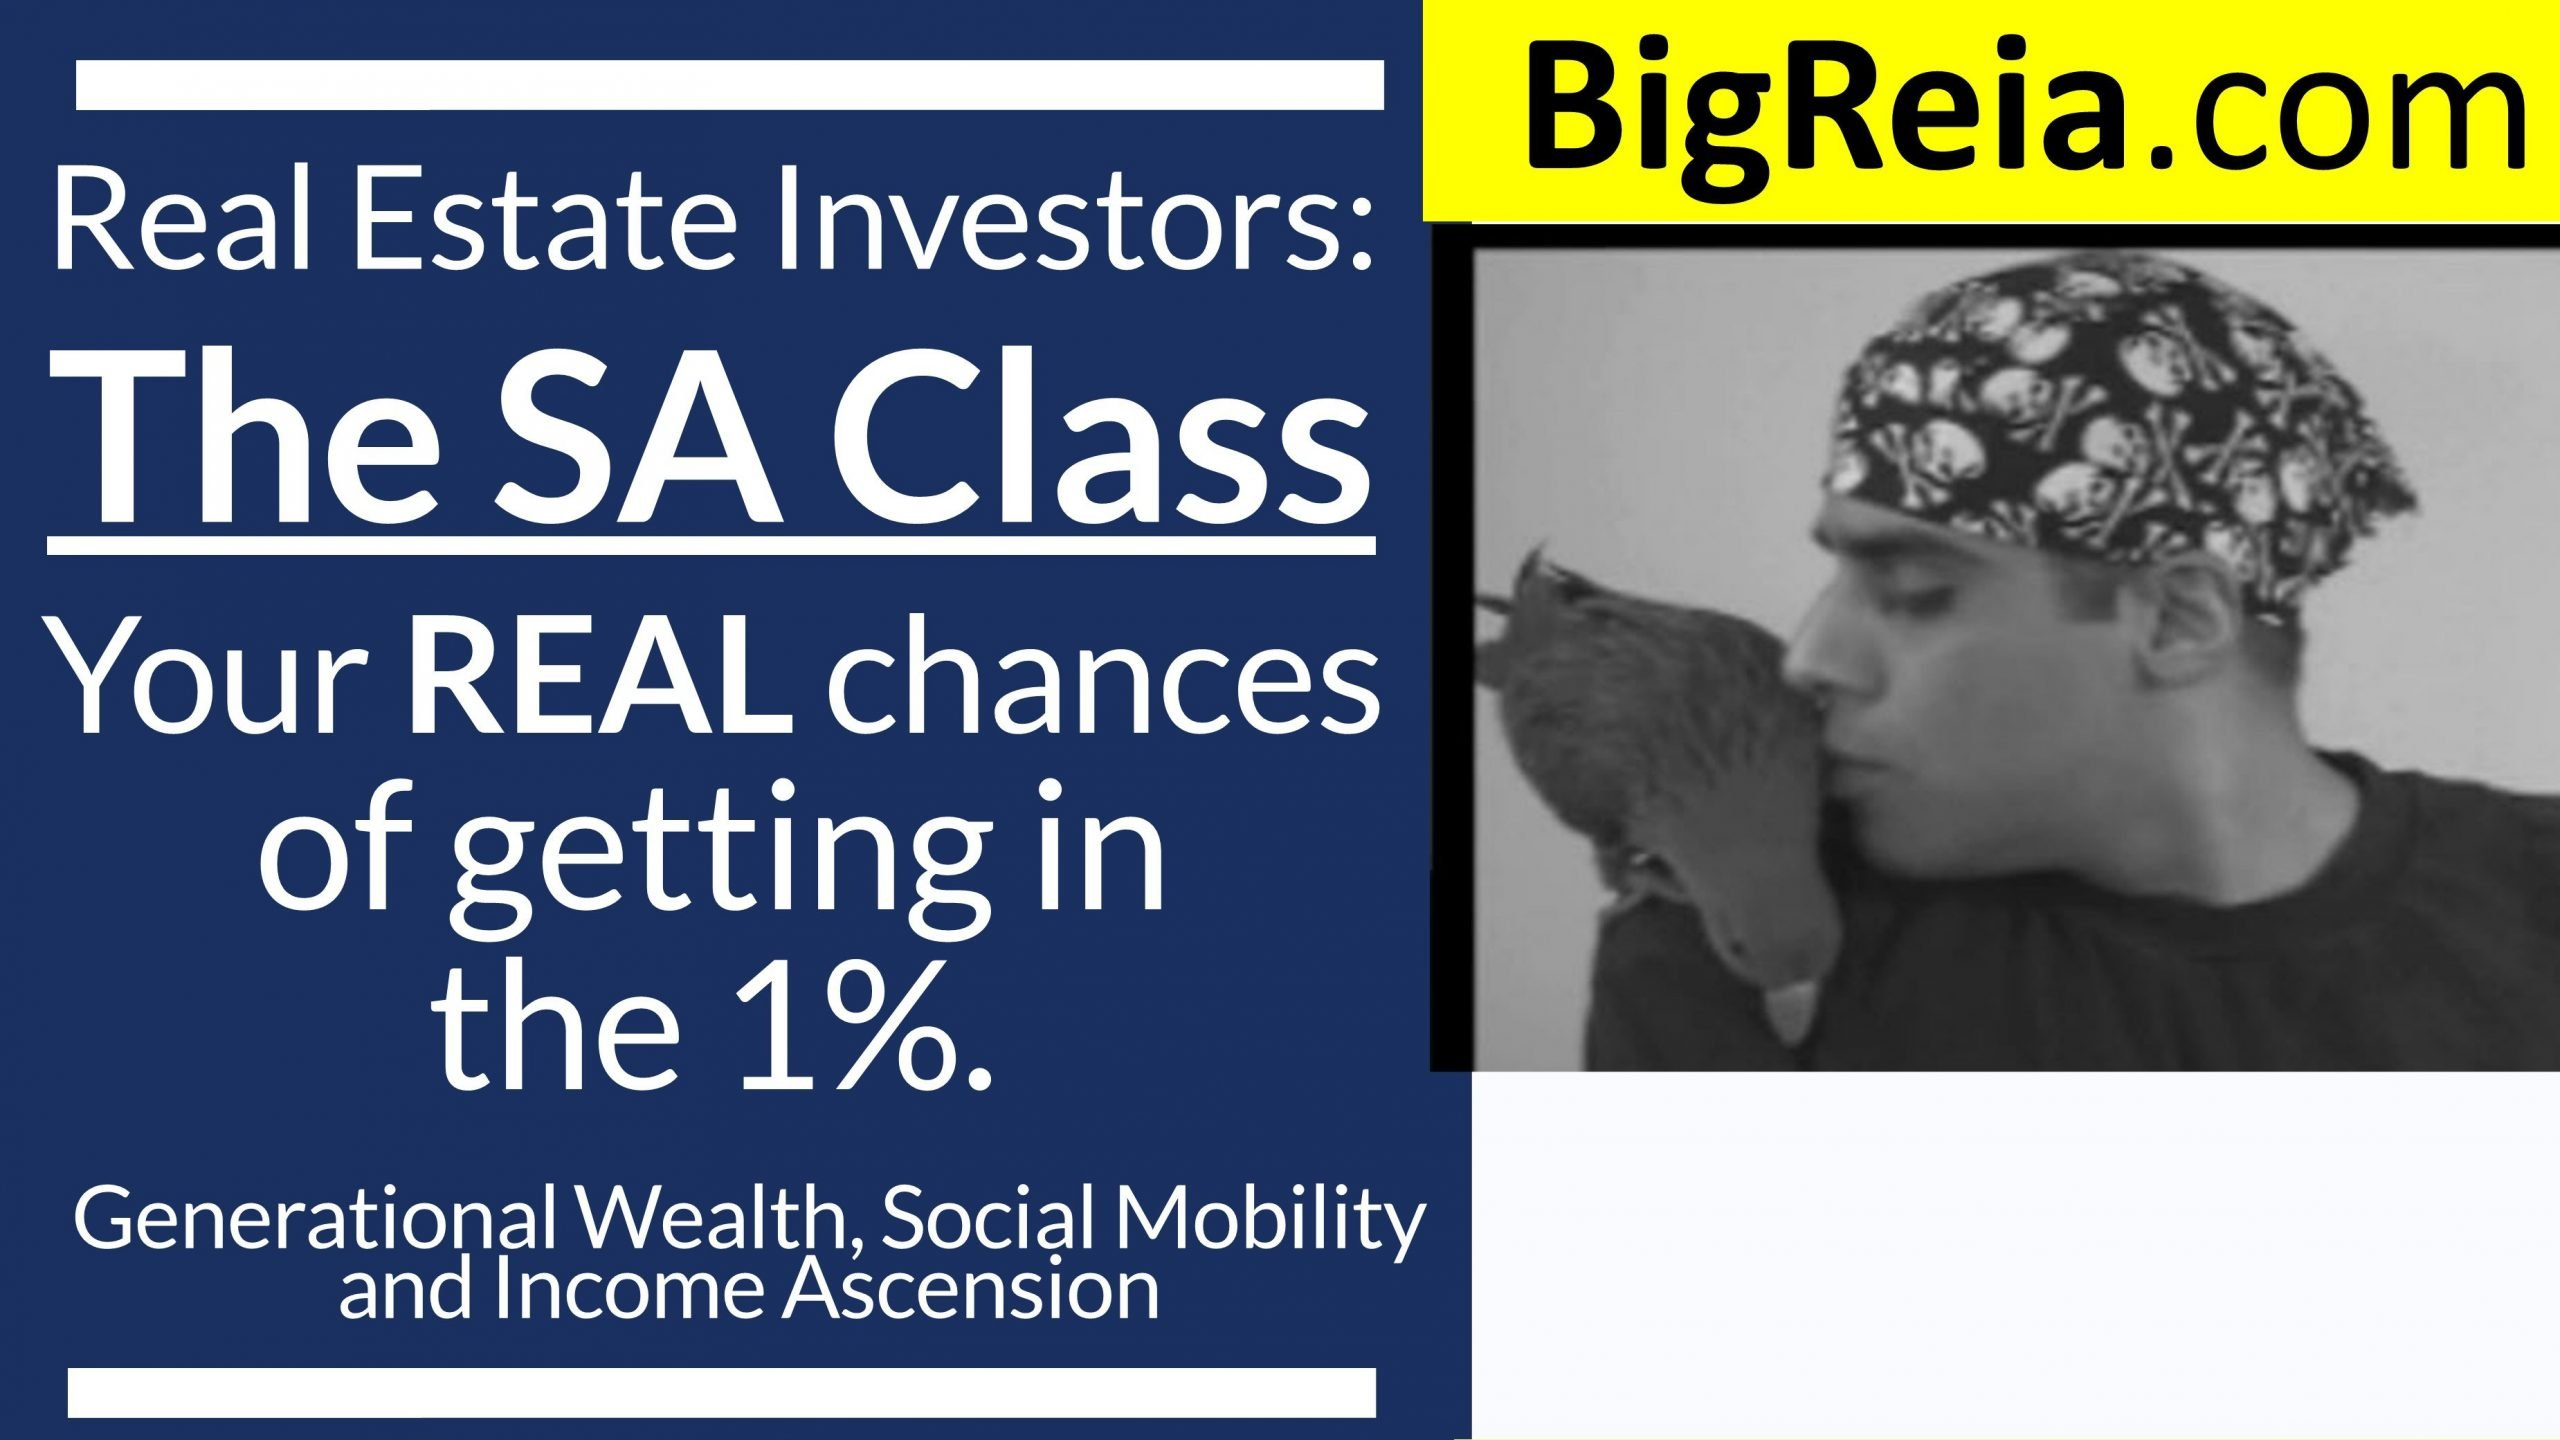 Real estate investors: your REAL chances of creating wealth, social mobility and income ascension? The SA Class.